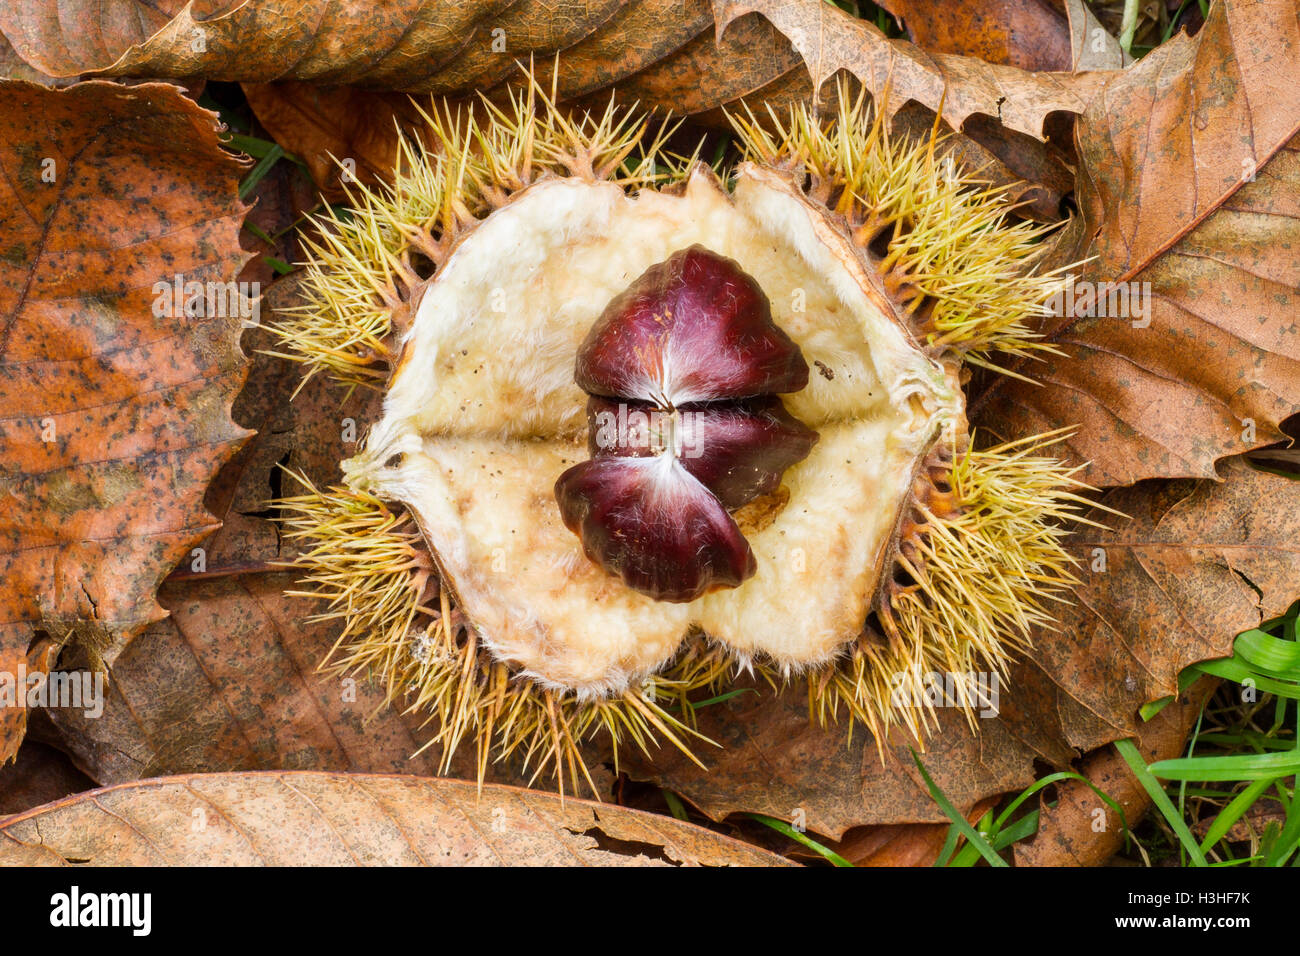 horse chestnut (Aesculus hippocastanum) or conker seed in capsule on floor leaf litter in forest, Norfolk, England, Stock Photo